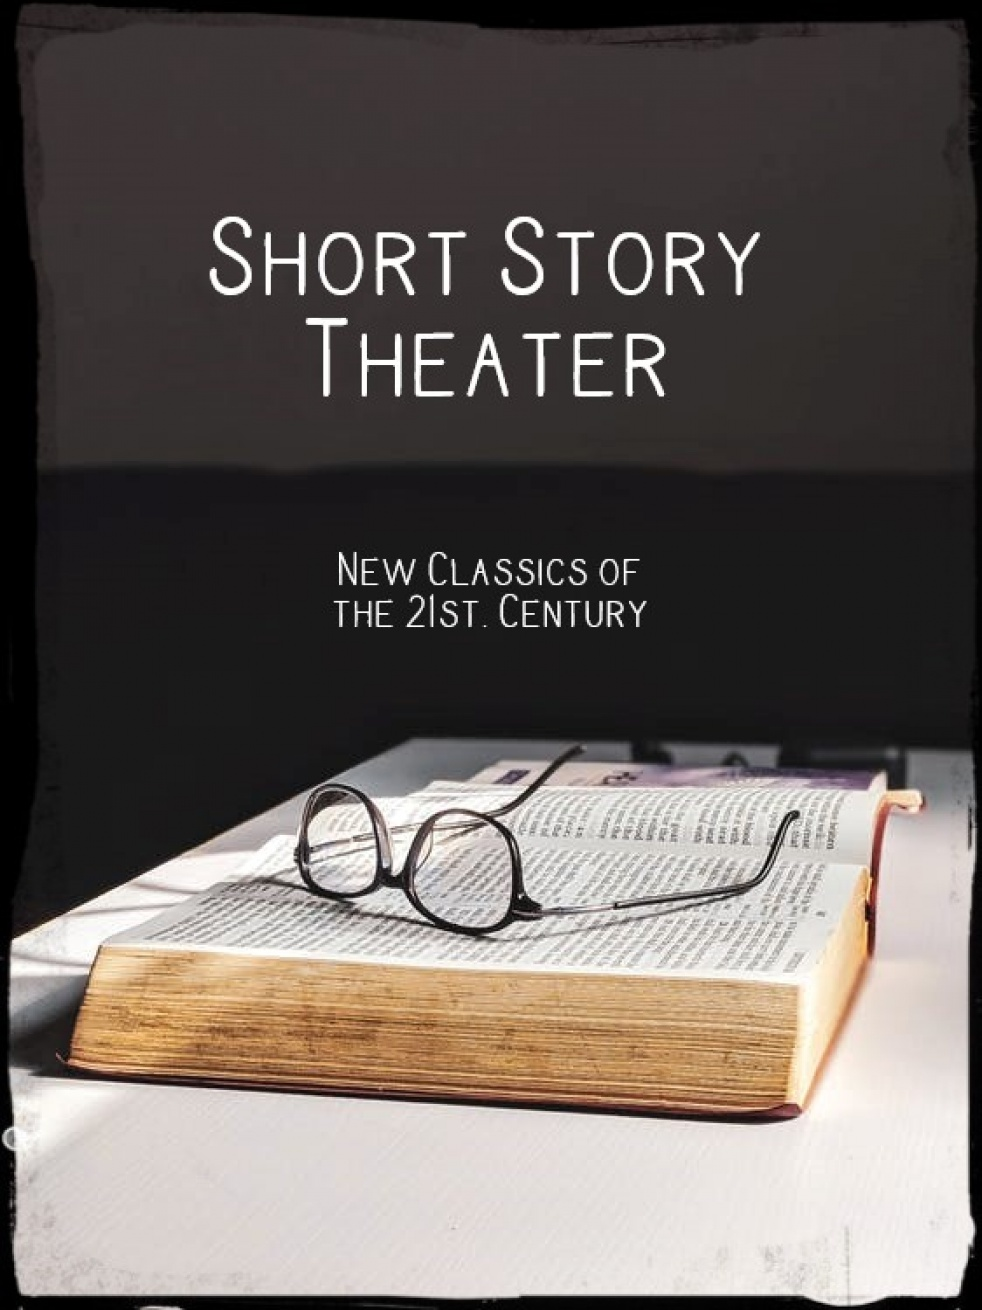 Short Story Theater - show cover